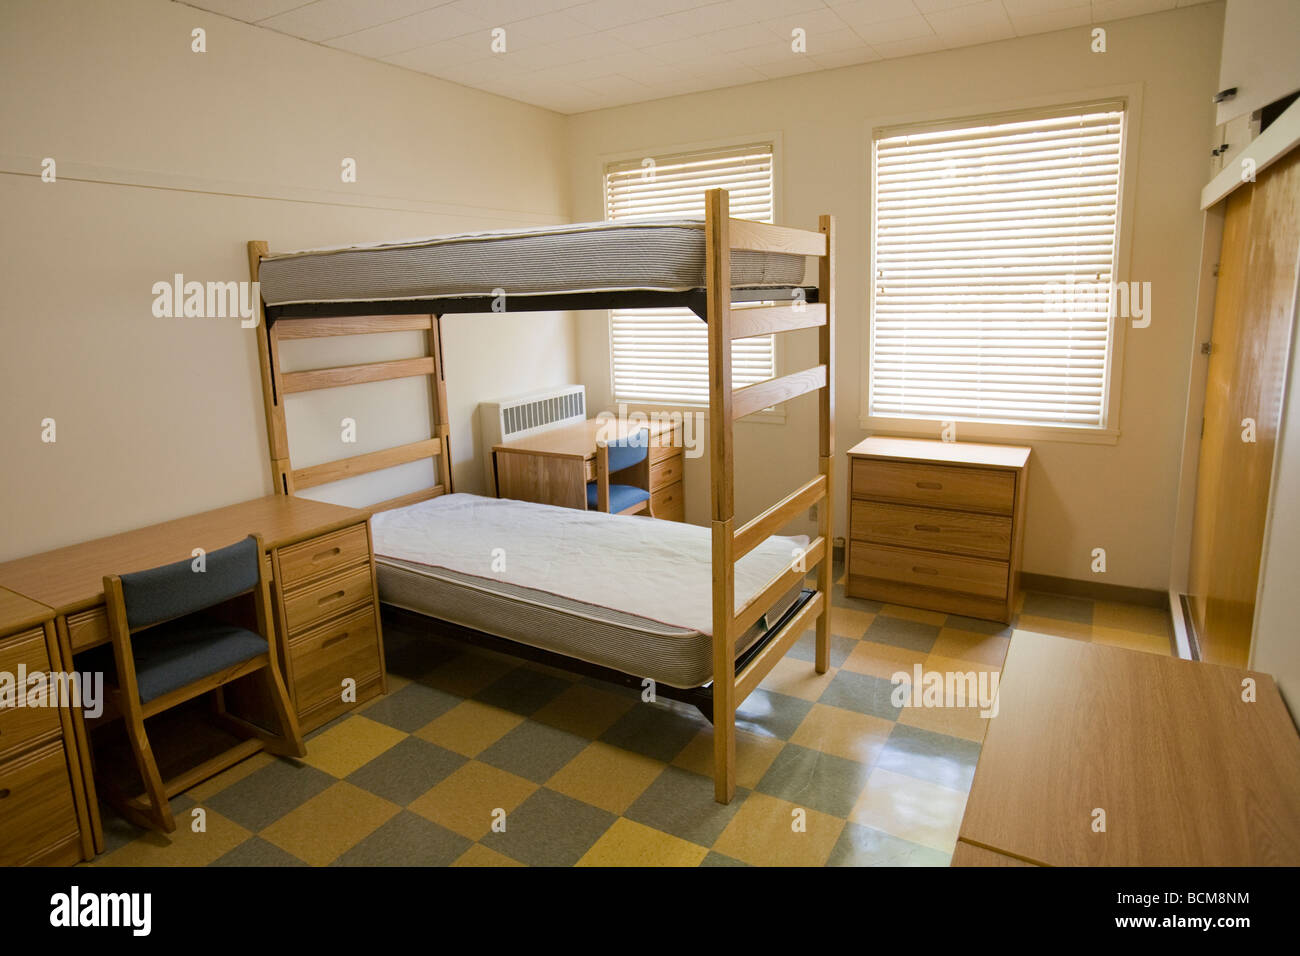 Occidental College Dorm Room